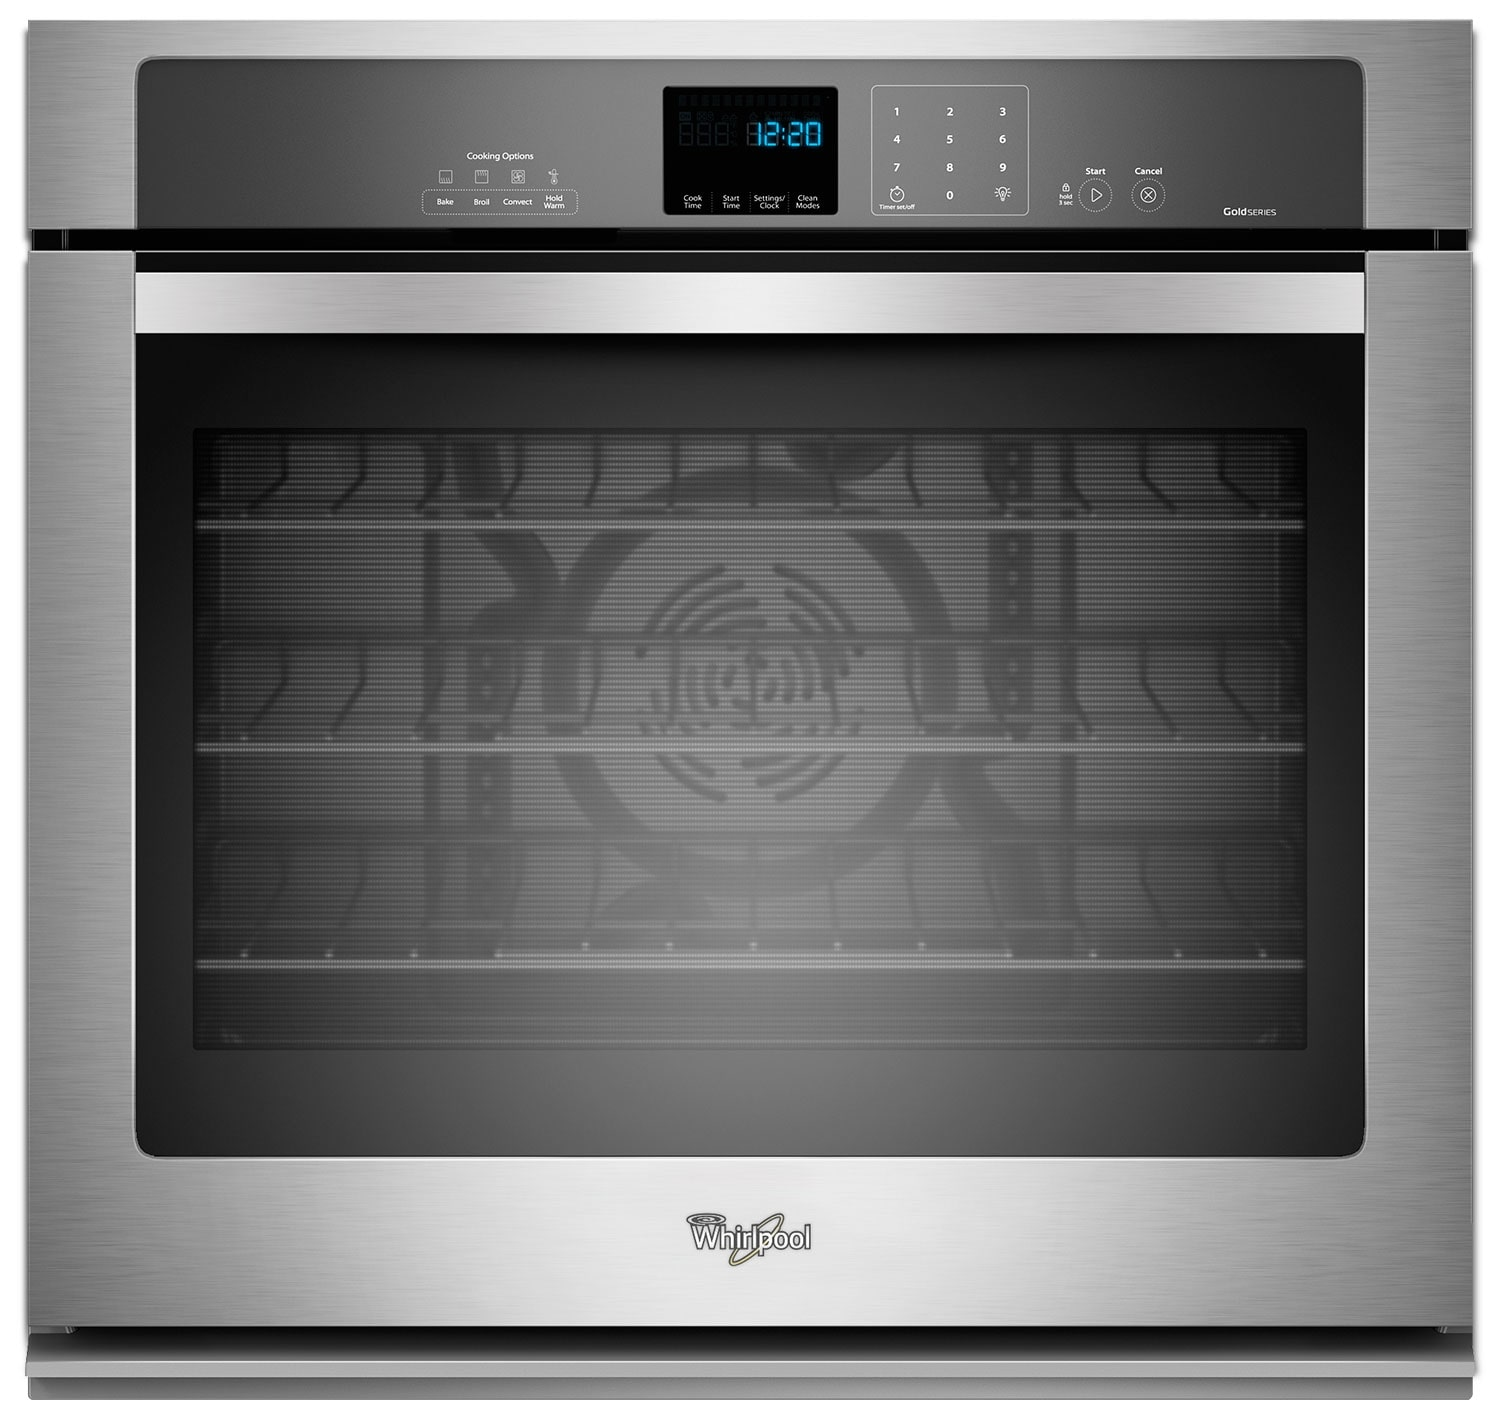 Cooking Products - Whirlpool Stainless Steel Convection Wall Oven (5.0 Cu. Ft.) - WOS92EC0AS